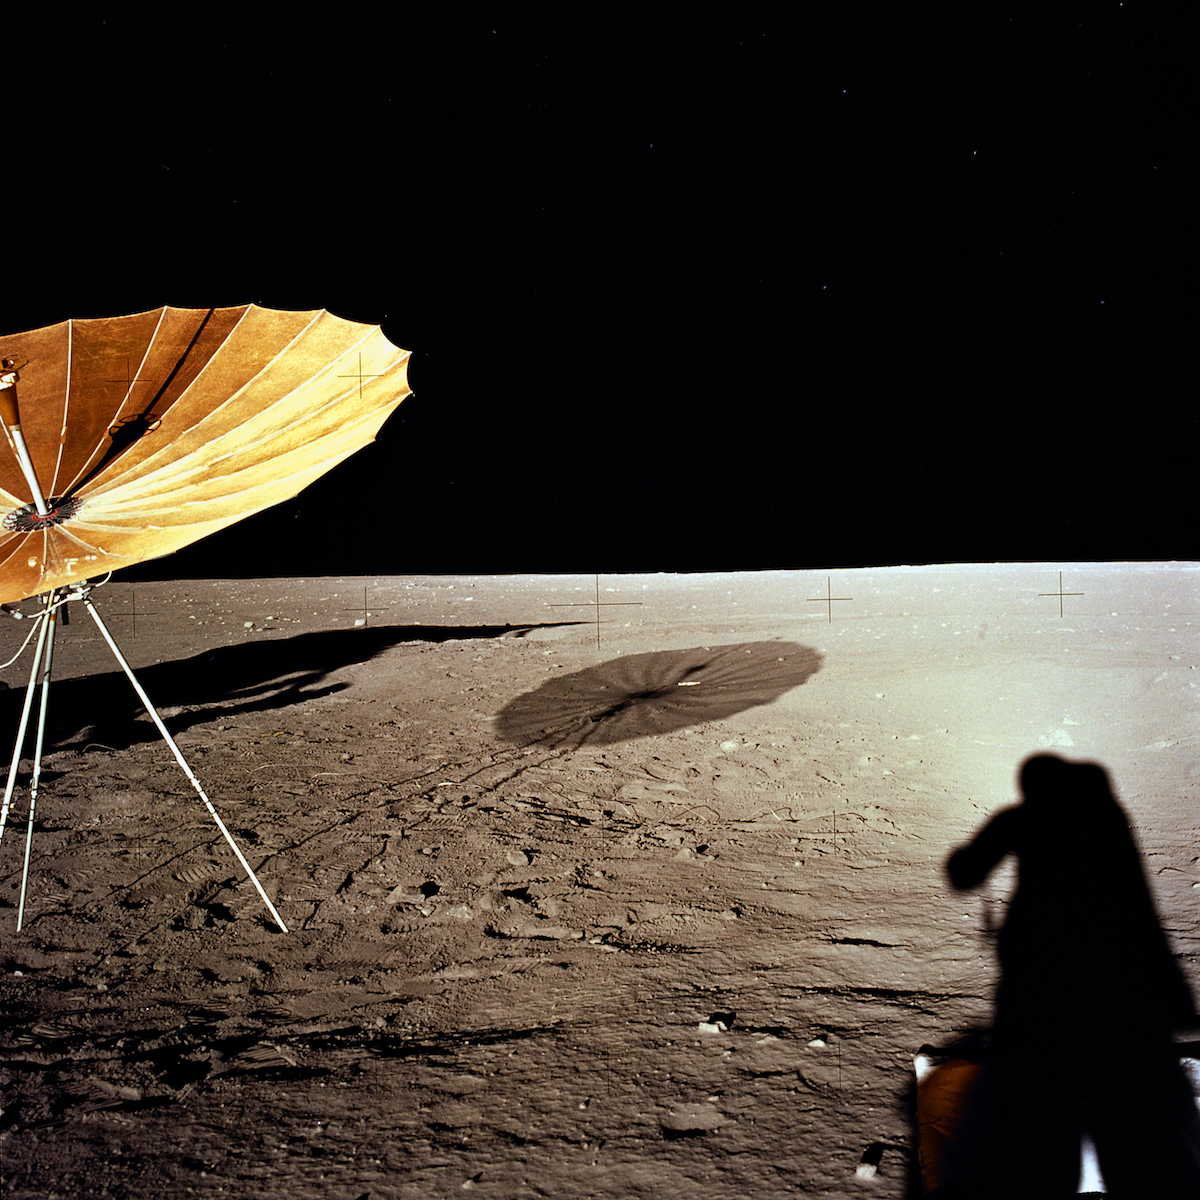 an antenna deployed on the Moon's surface and an astronaut's shadow